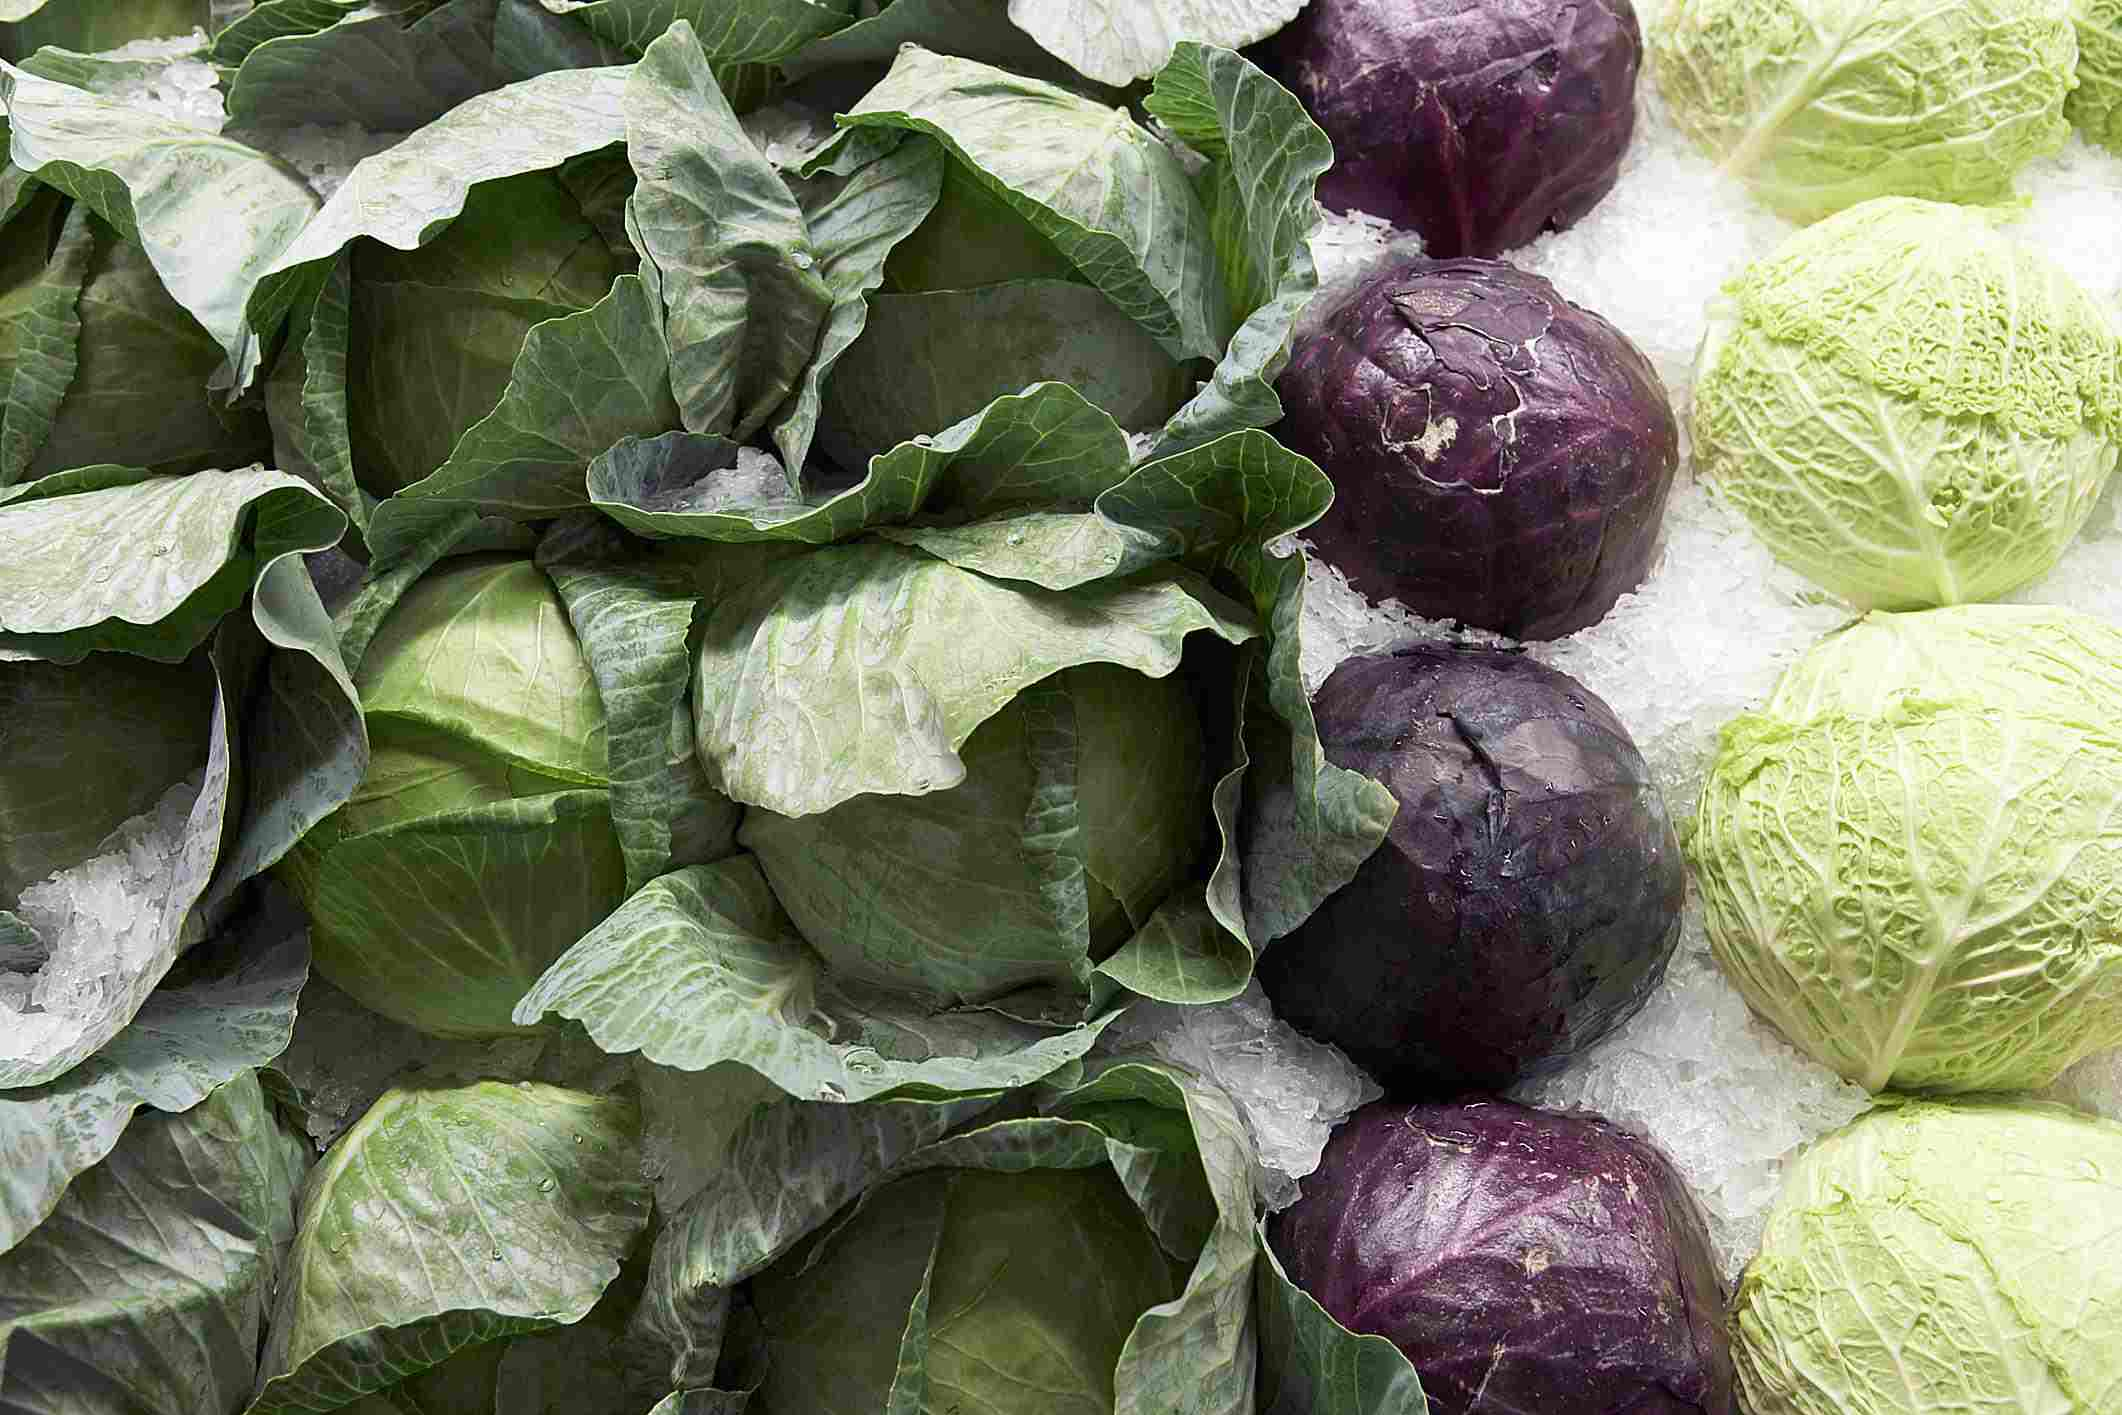 Three common cabbages: red, green, and savoy